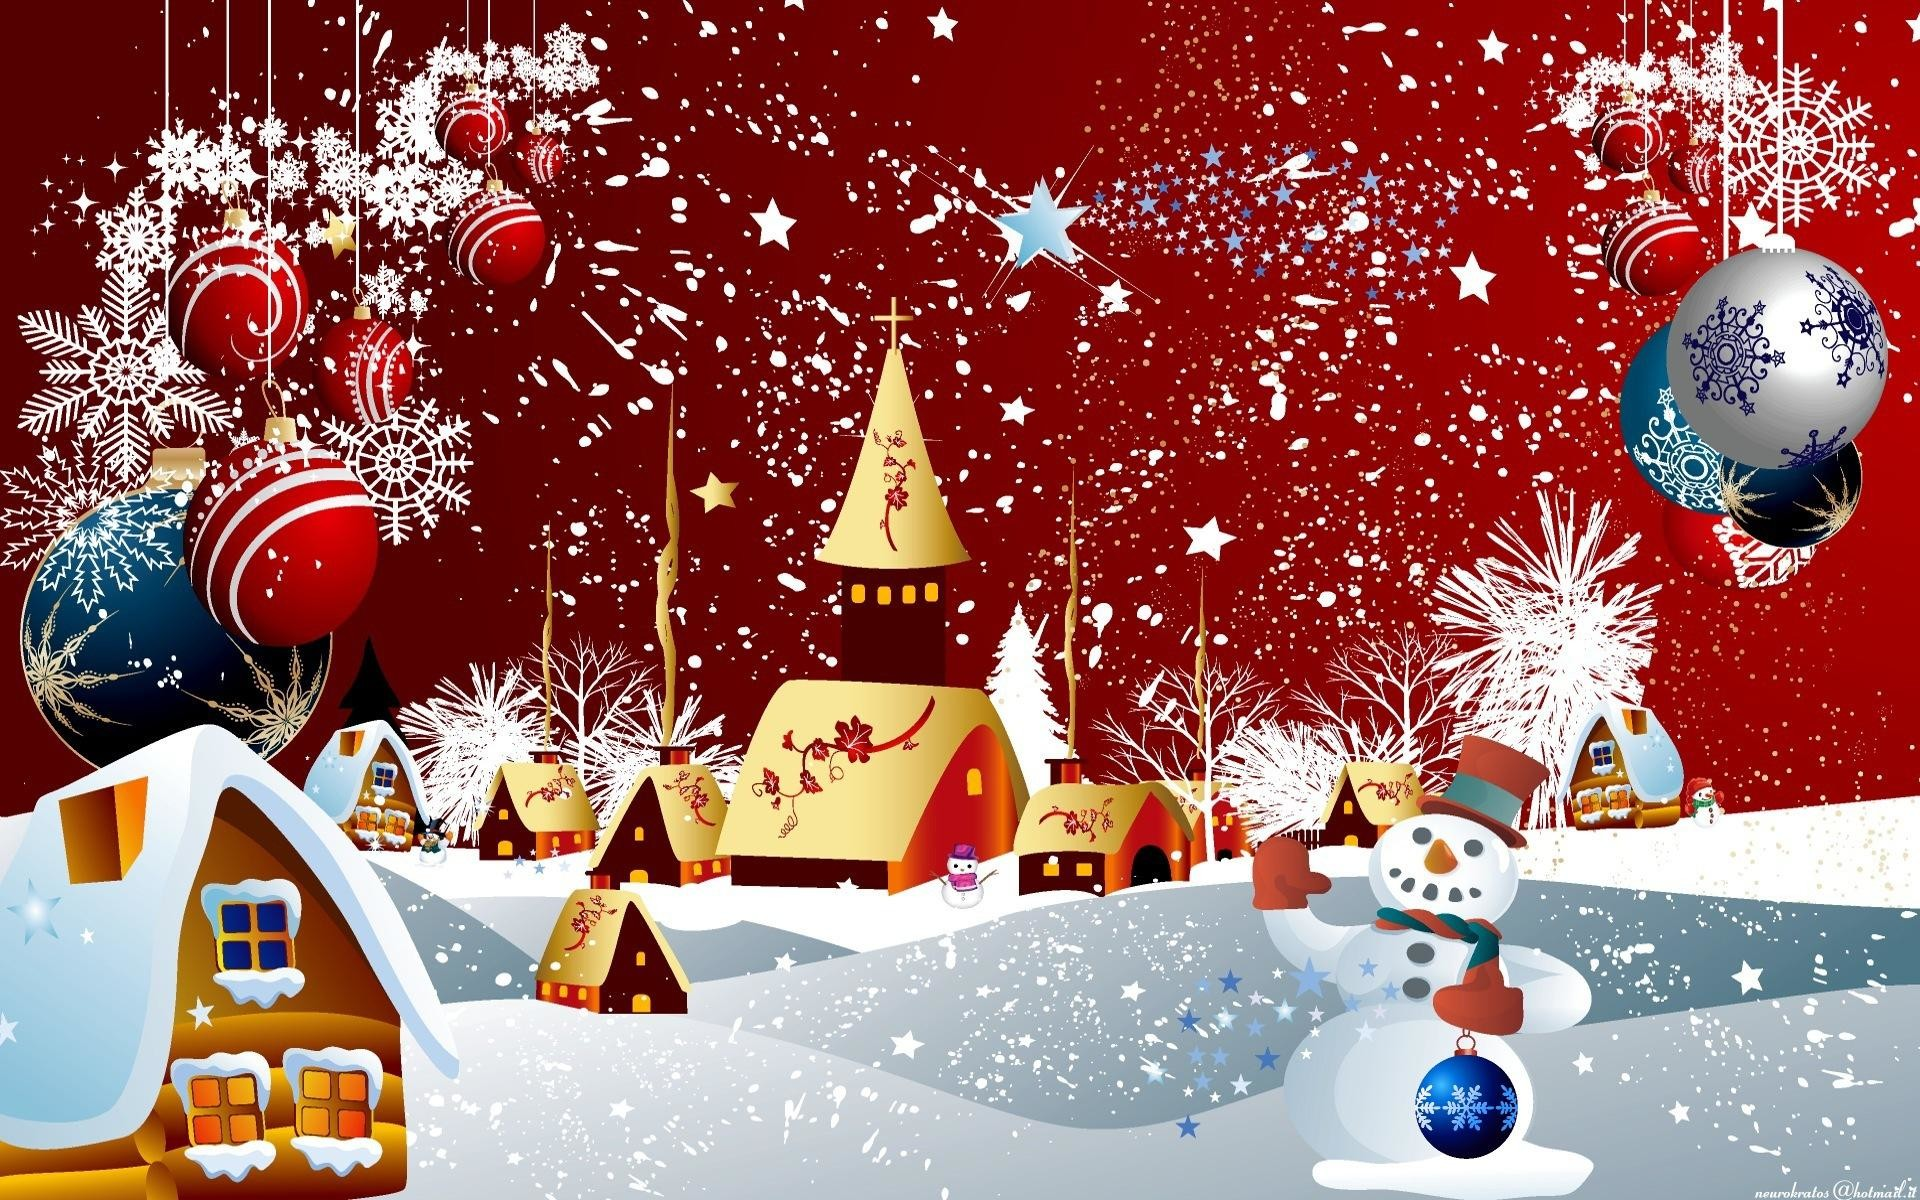 Merry-Christmas-Images-Pictures